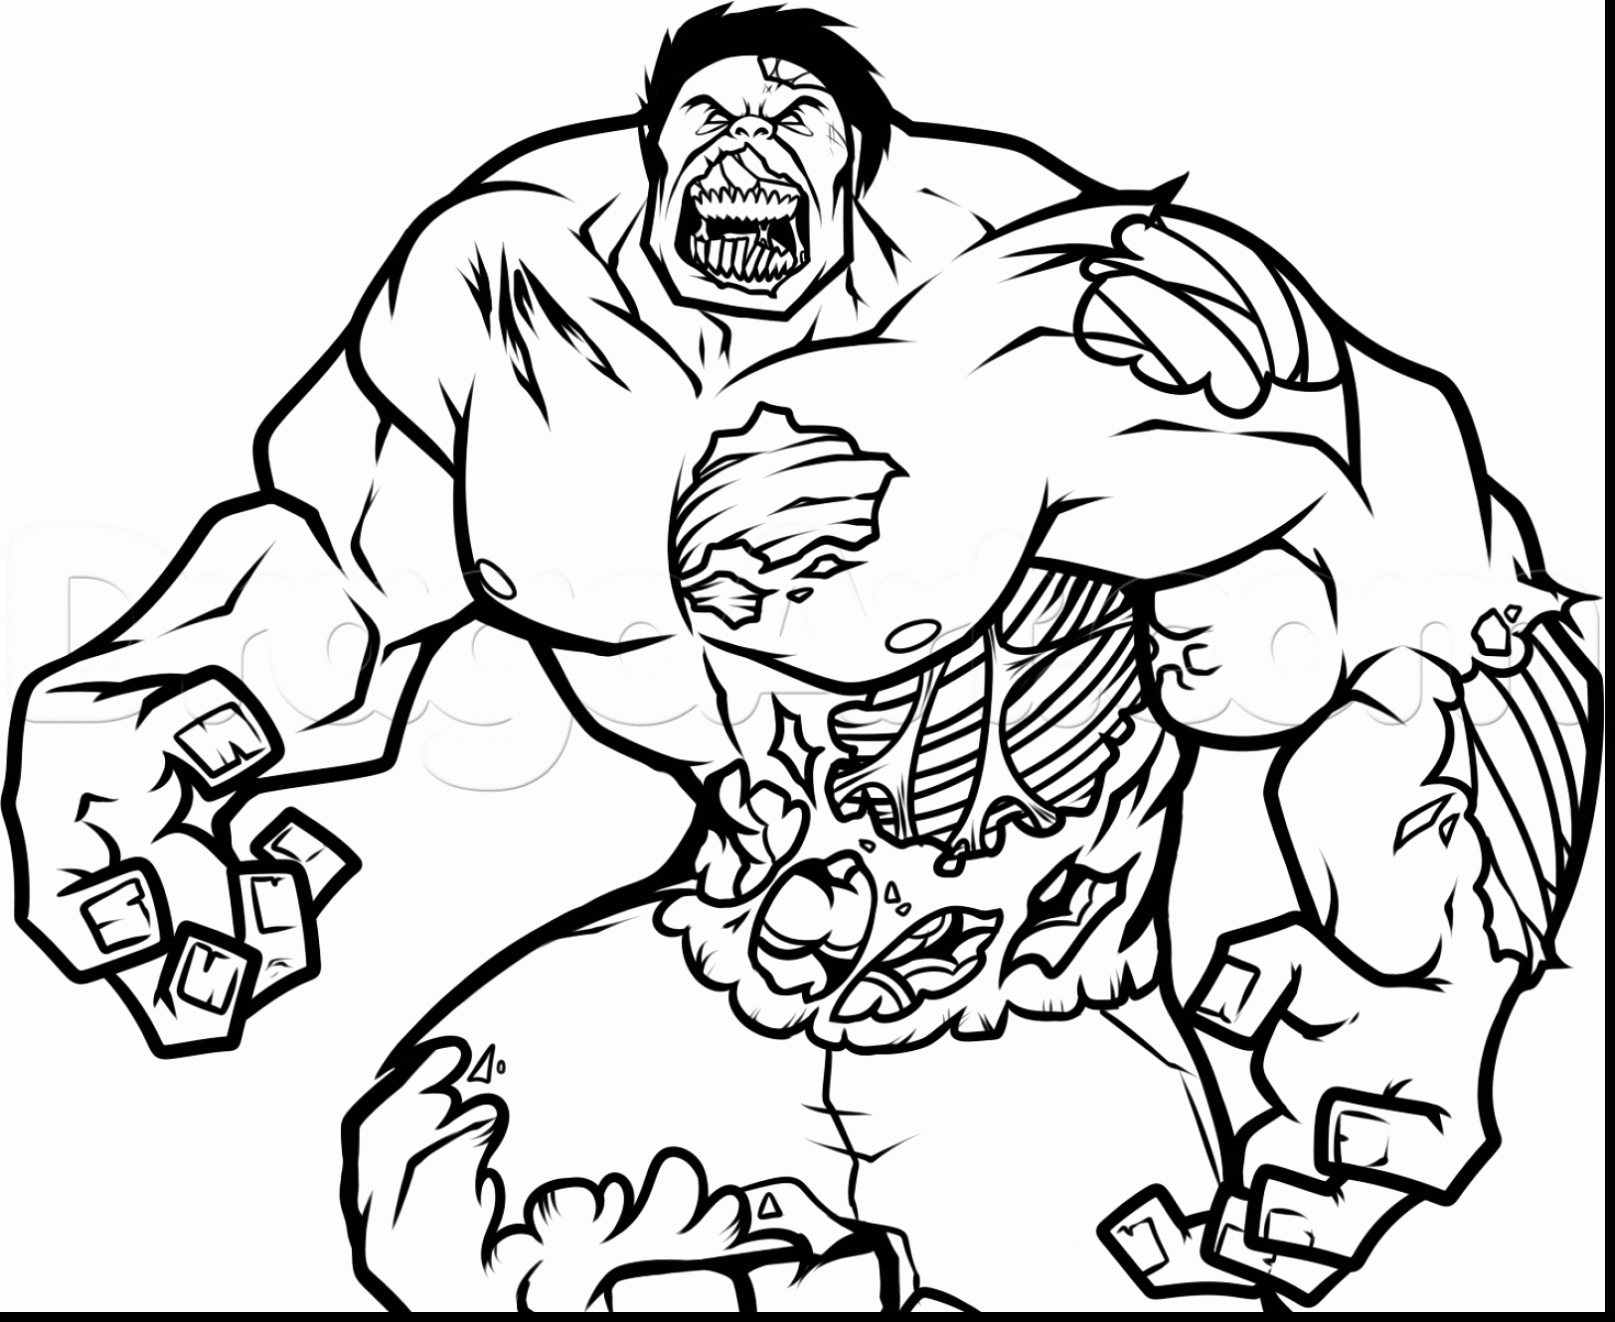 zombie coloring page free printable zombie coloring pages for kids coloring page zombie 1 1